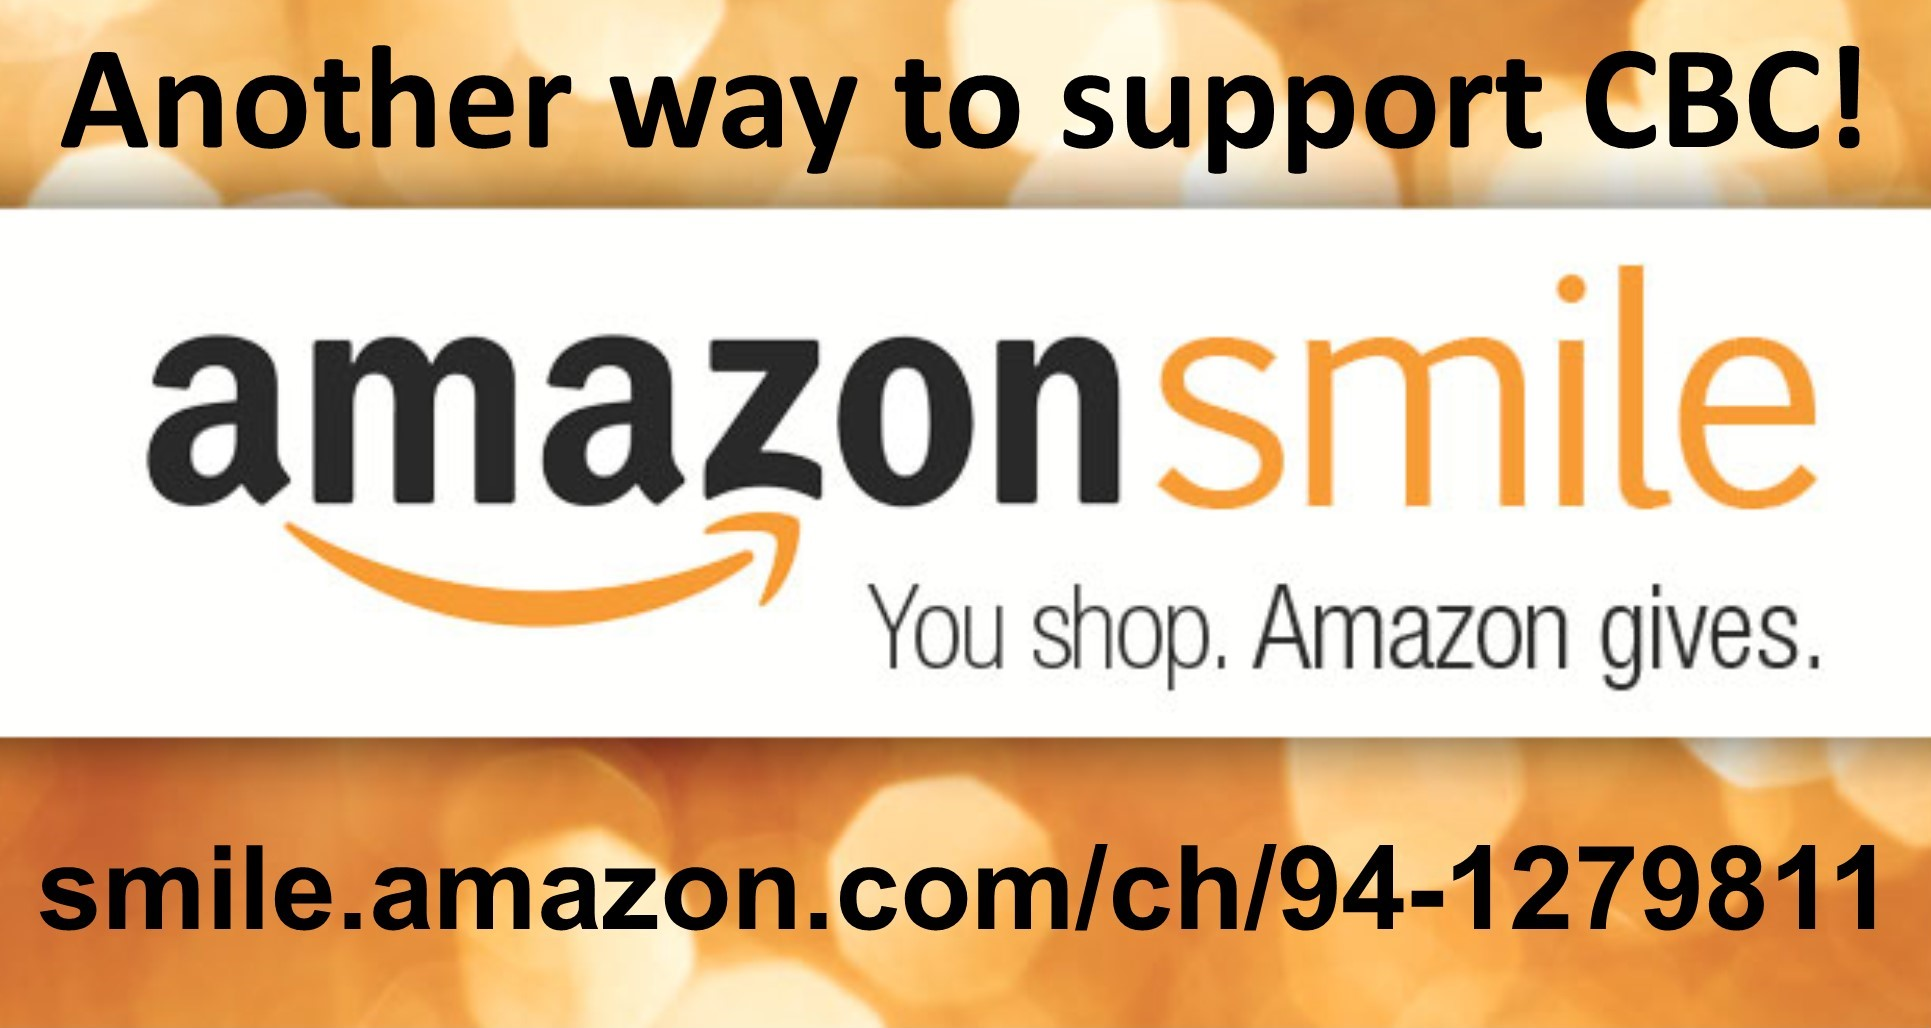 Support CBC through Amazon Smile!